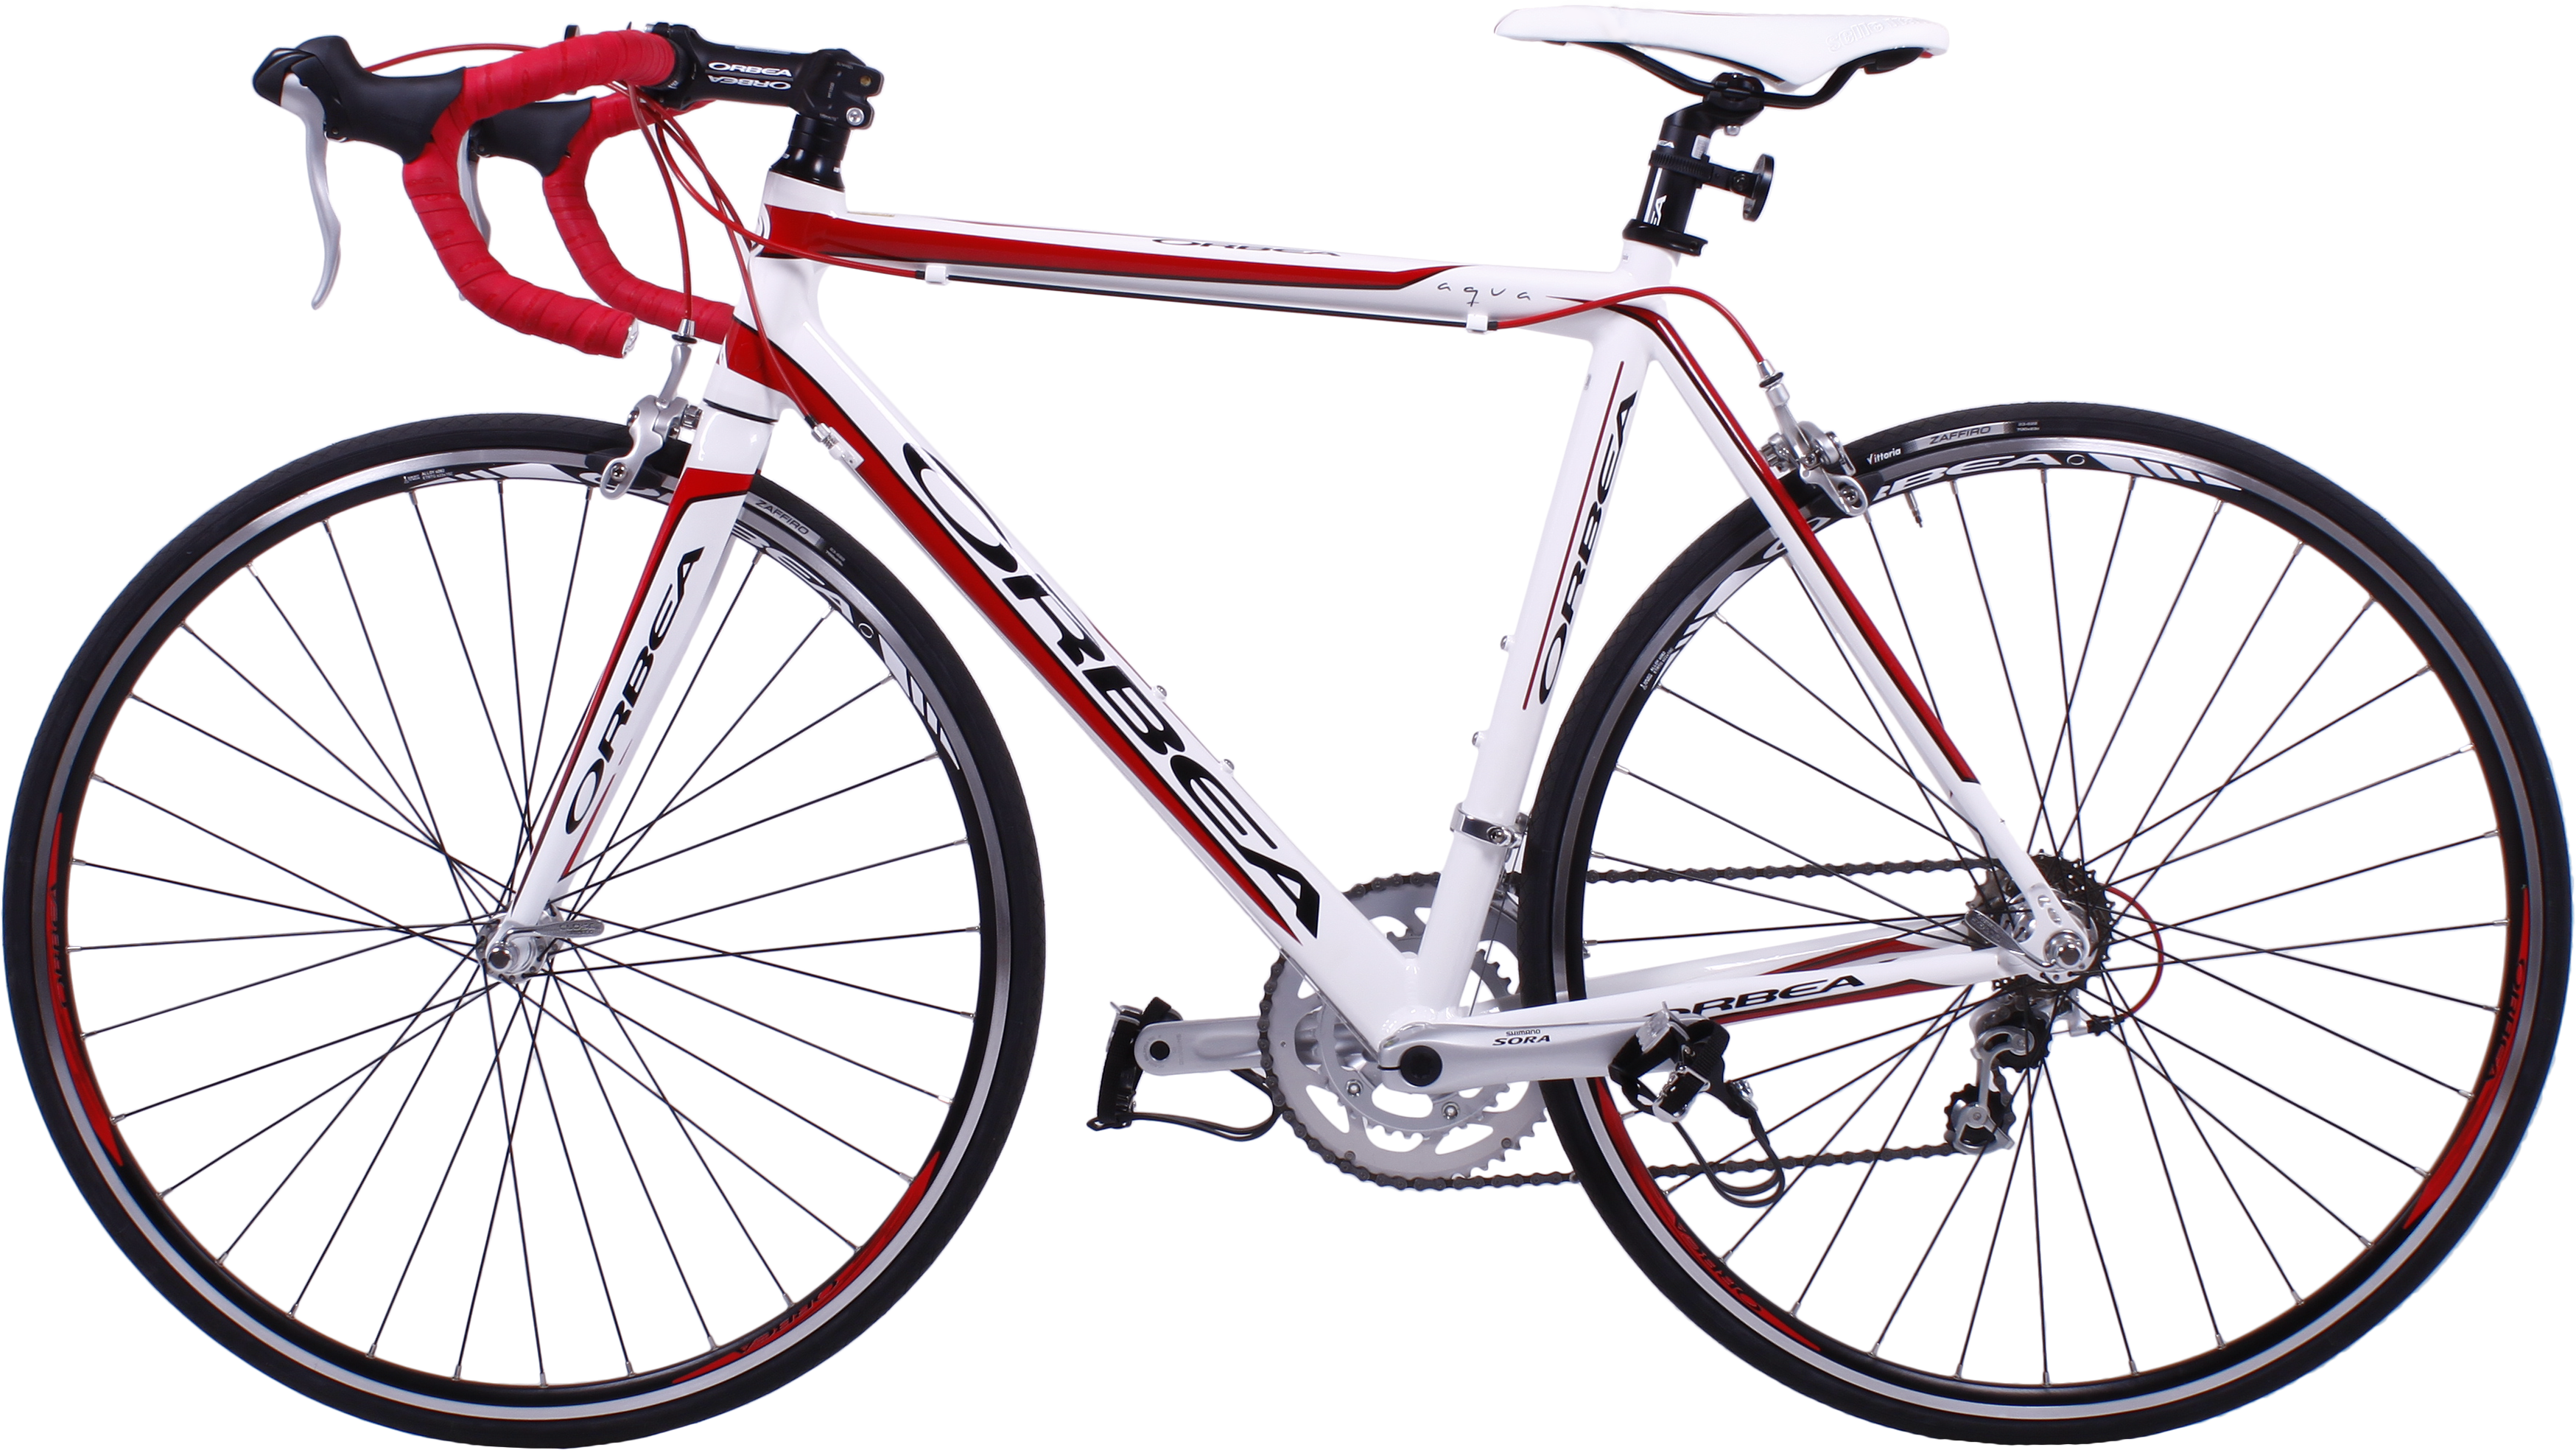 Bicycle Png - Bicycle PNG image